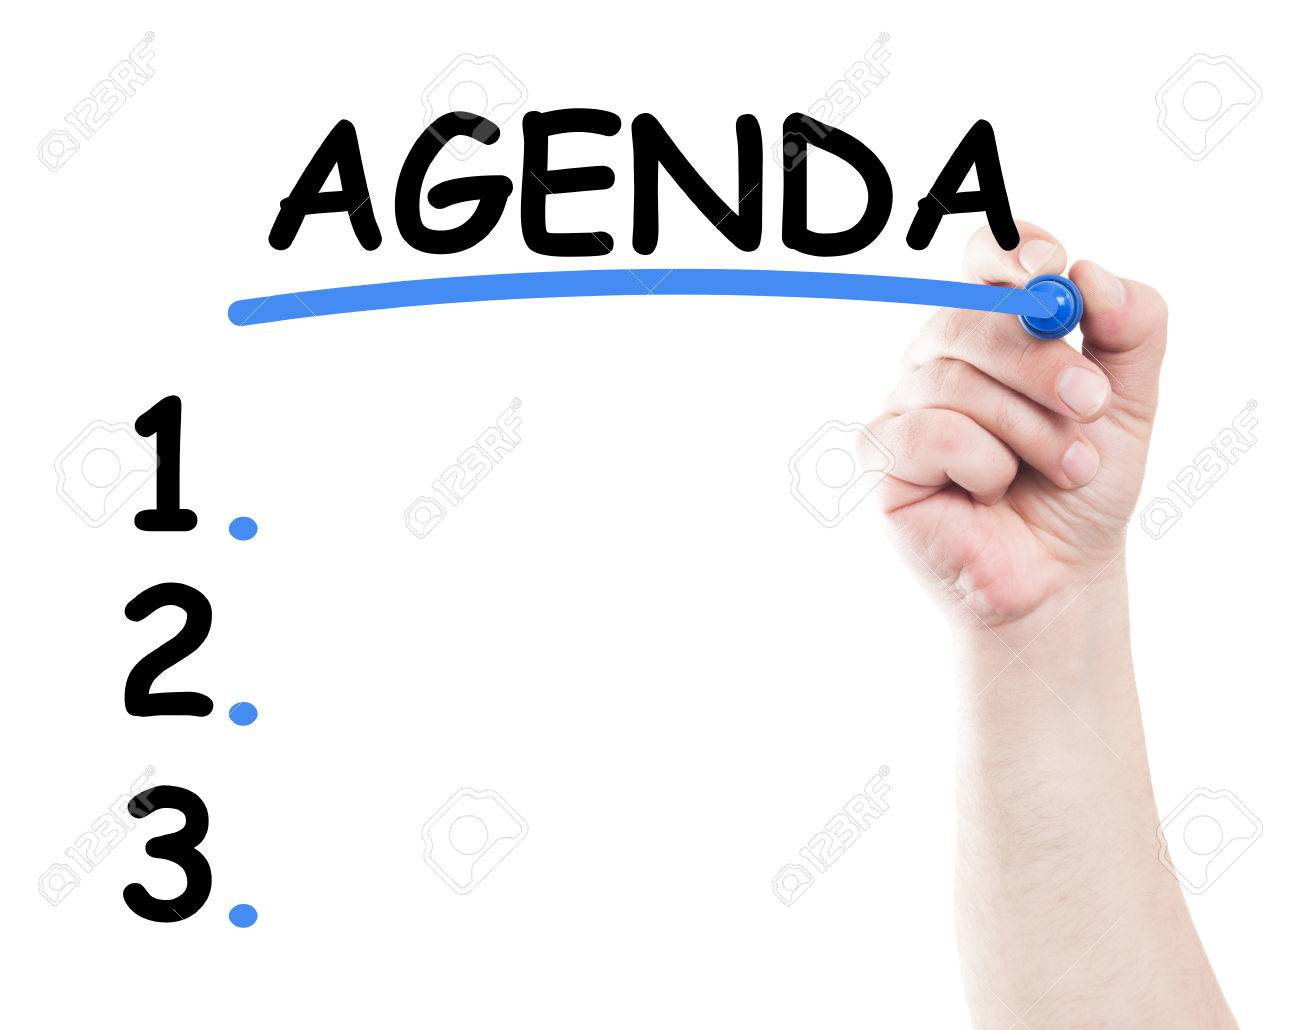 Agenda list concept made by a human hand holding a marker on transparent wipe board - 37833240